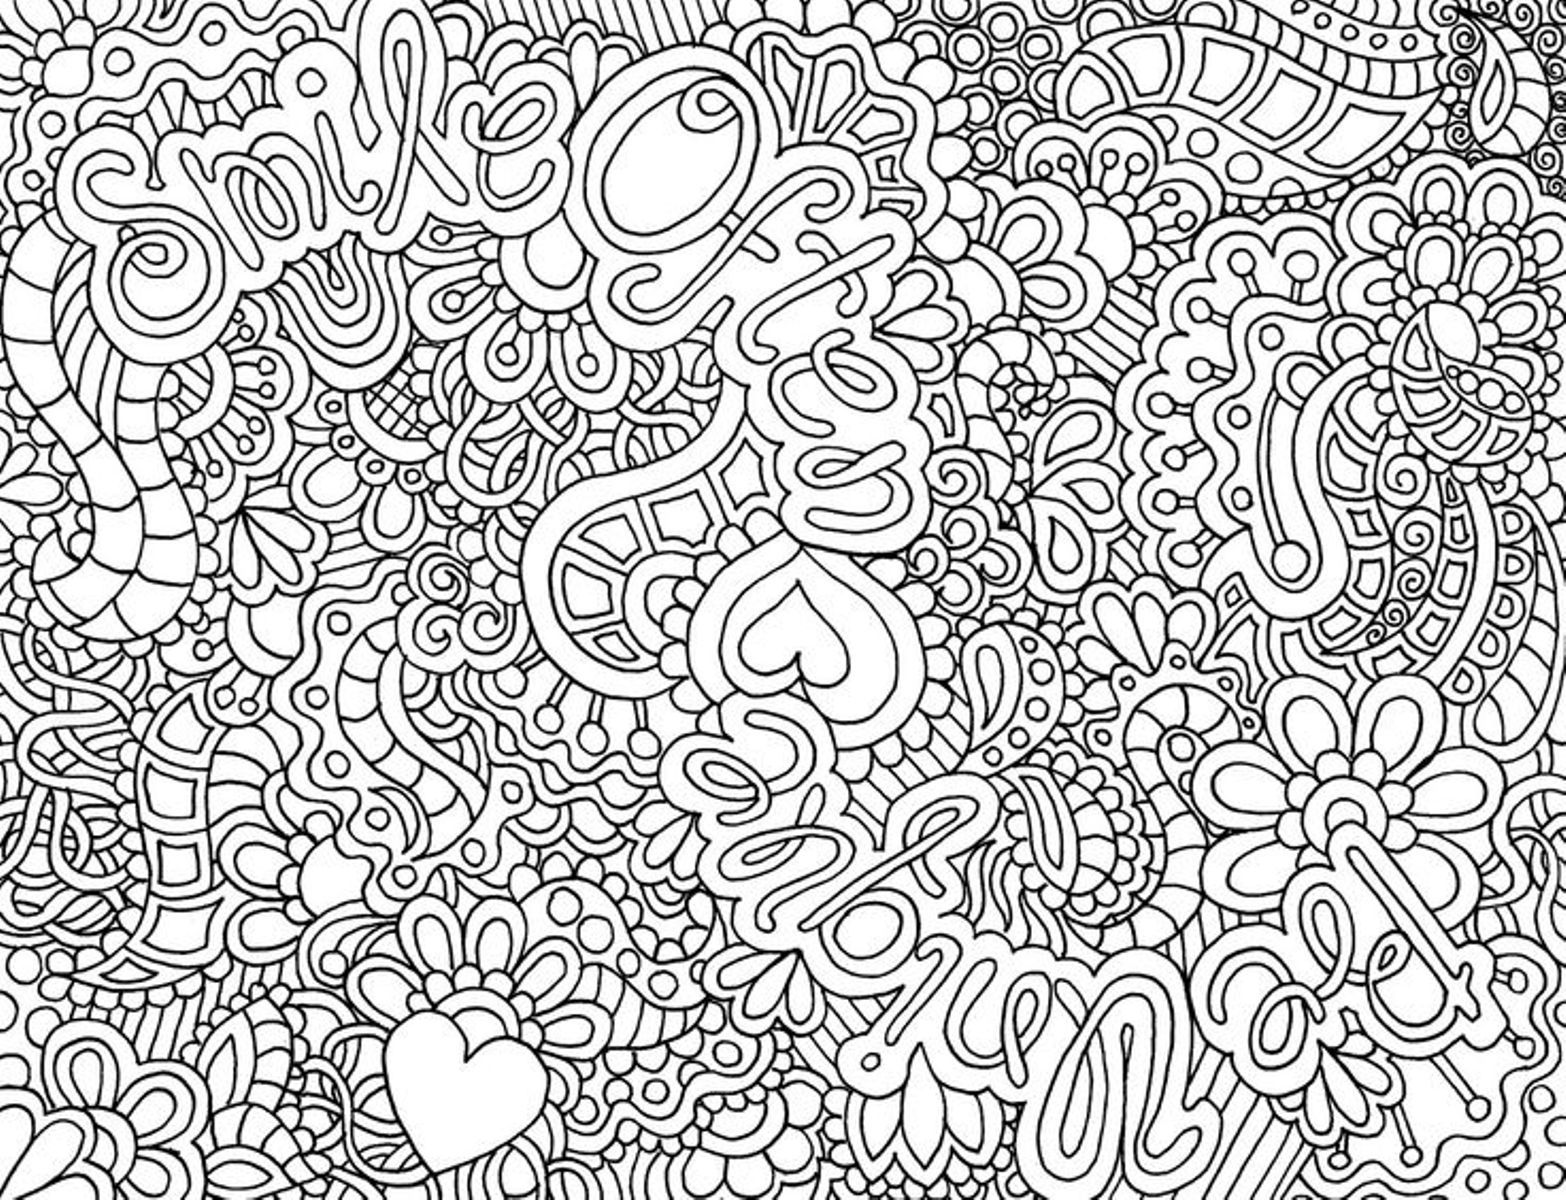 Teenage Coloring Pages Free Printable - Coloring Home